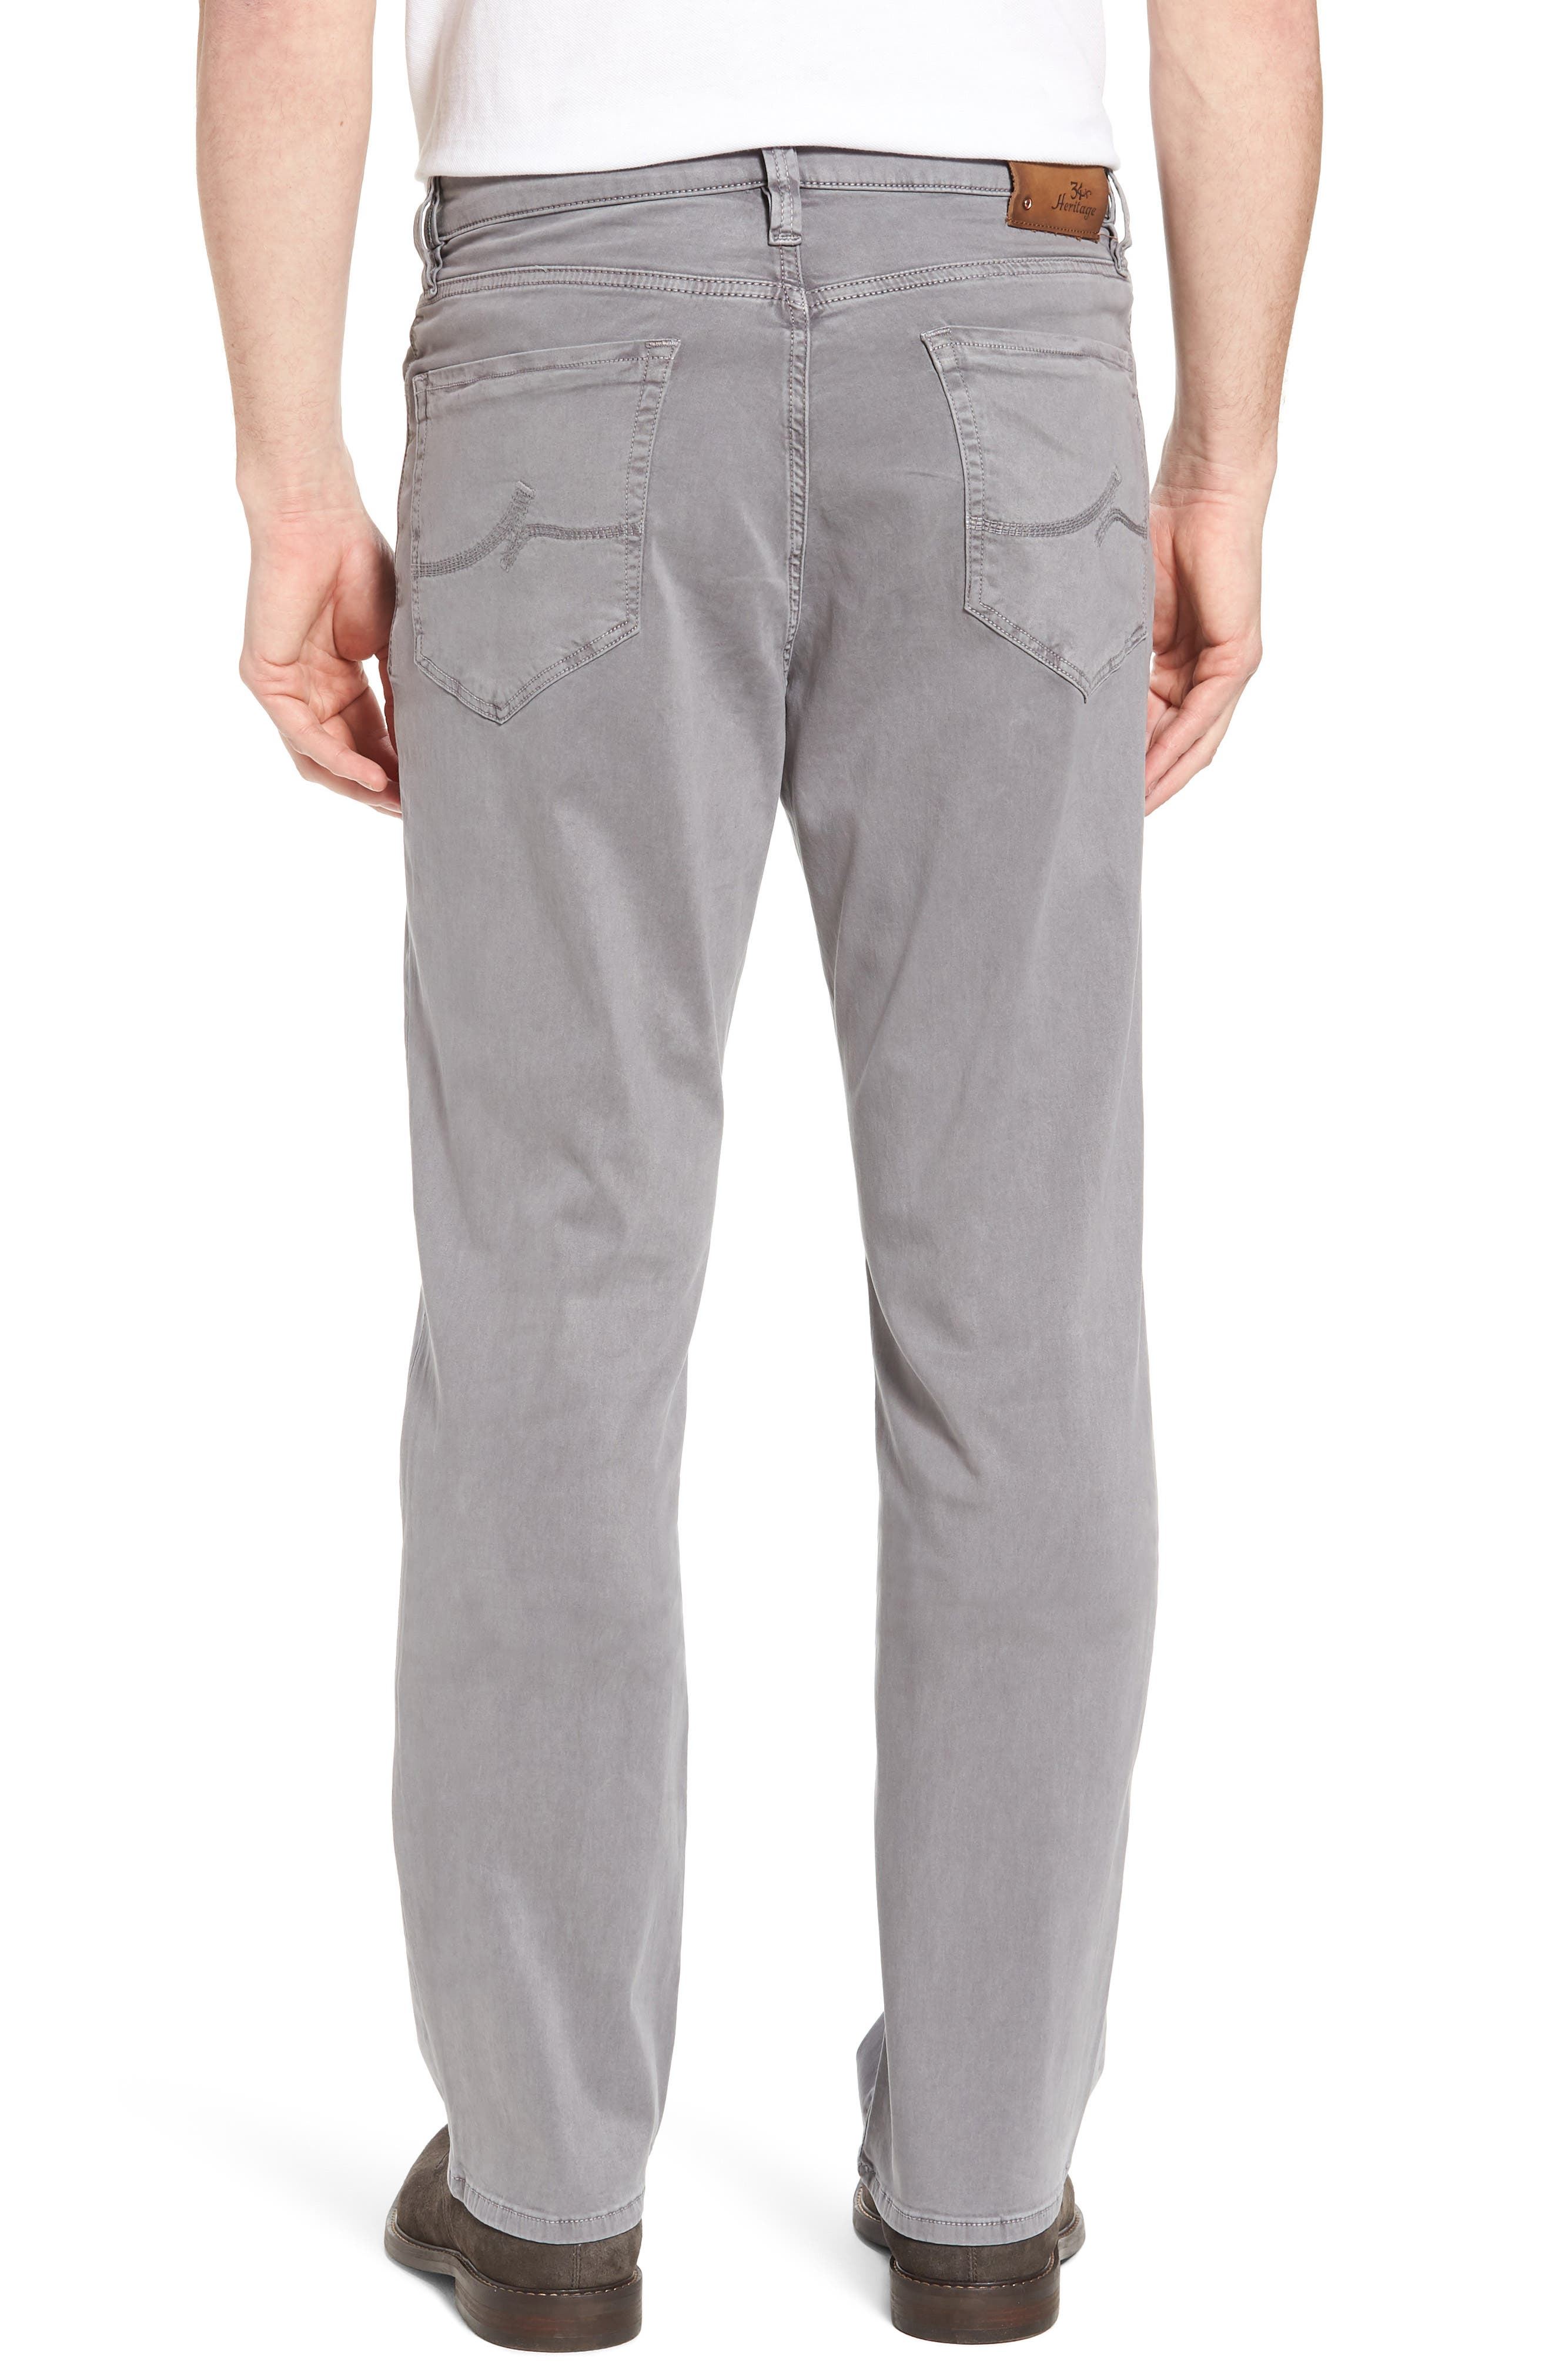 Charisma Relaxed Fit Twill Pants,                             Alternate thumbnail 2, color,                             Shark Twill